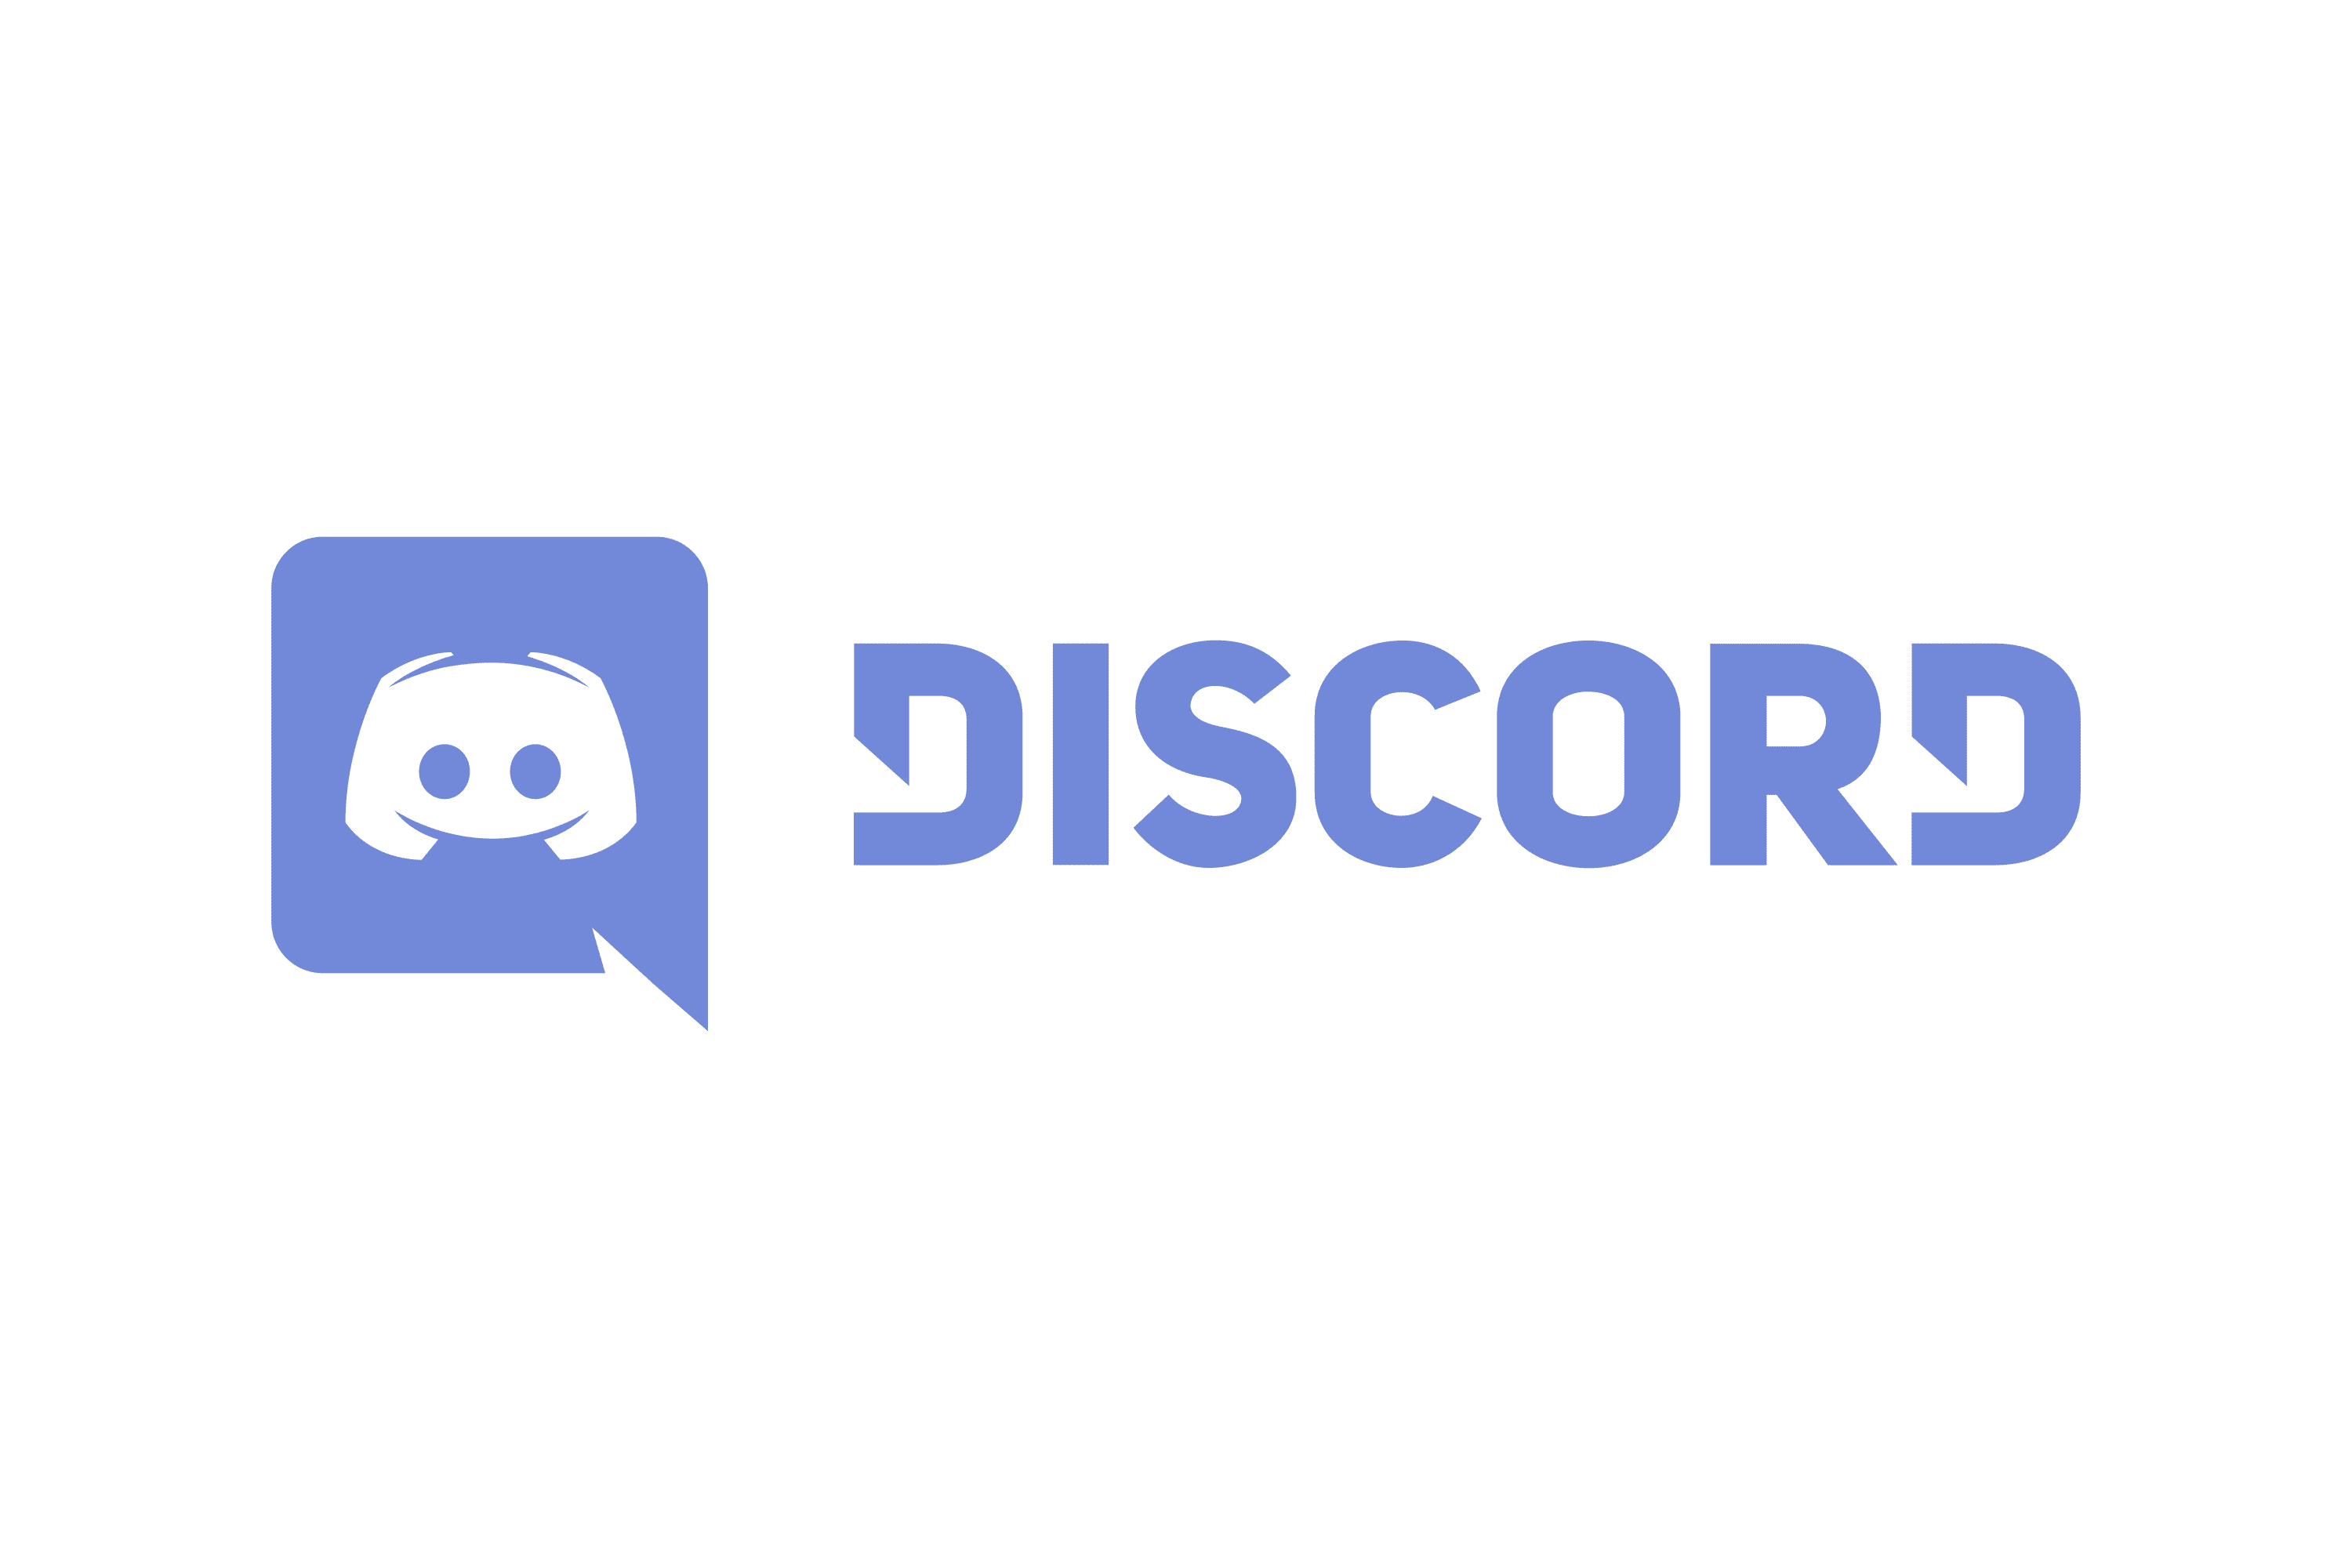 Discord logo and symbol, meaning, history, PNG